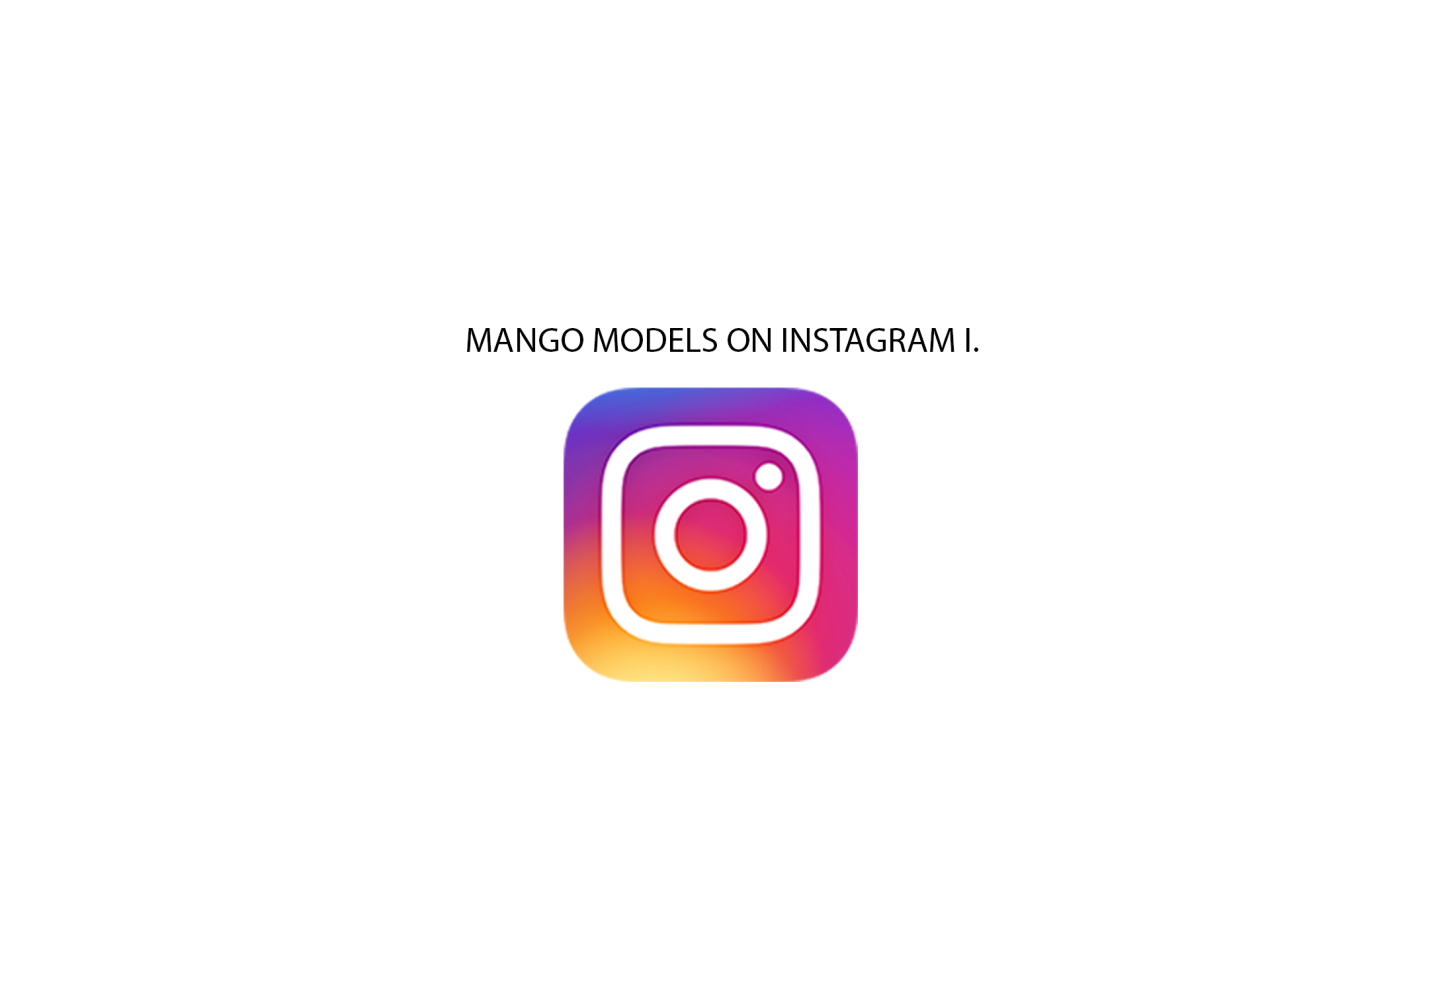 MANGO MODELS ON INSTAGRAM II.